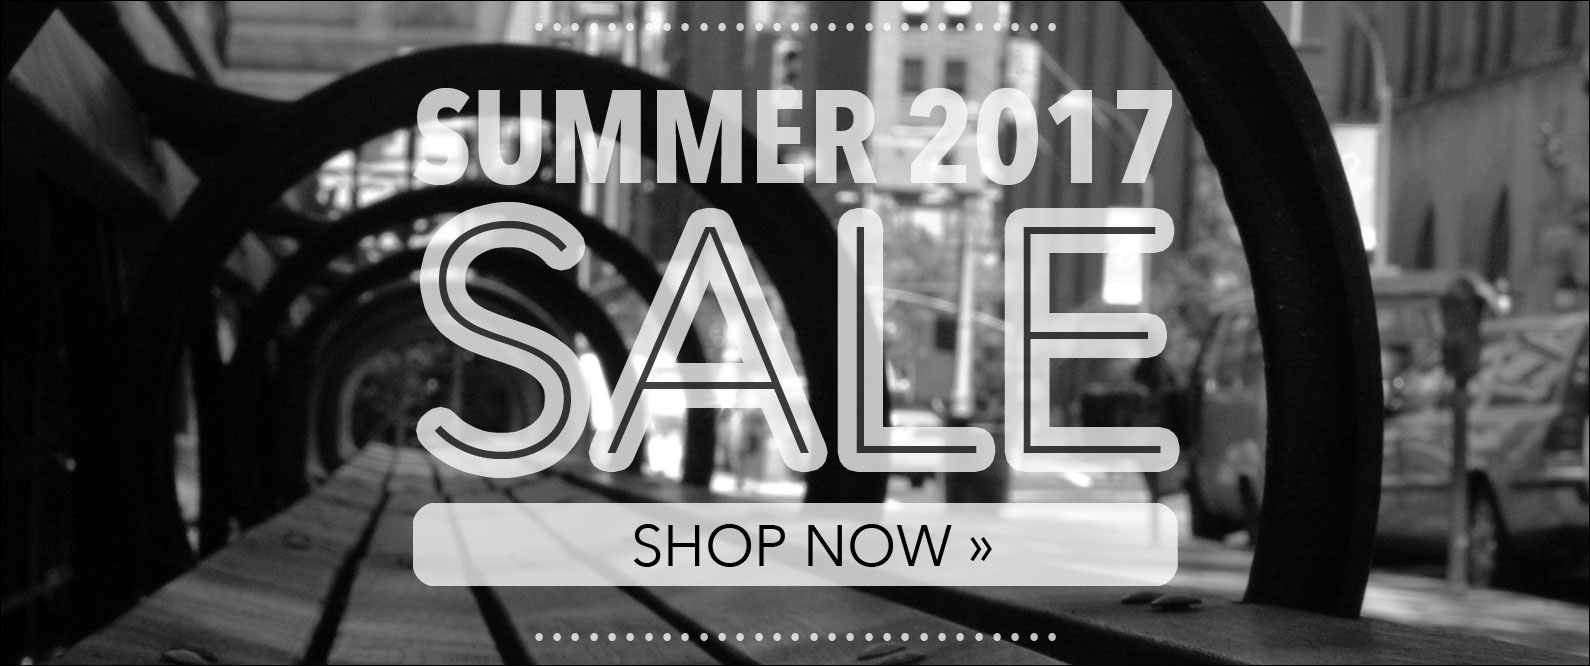 Concept By Cruise: Sale up to 70% off menswear